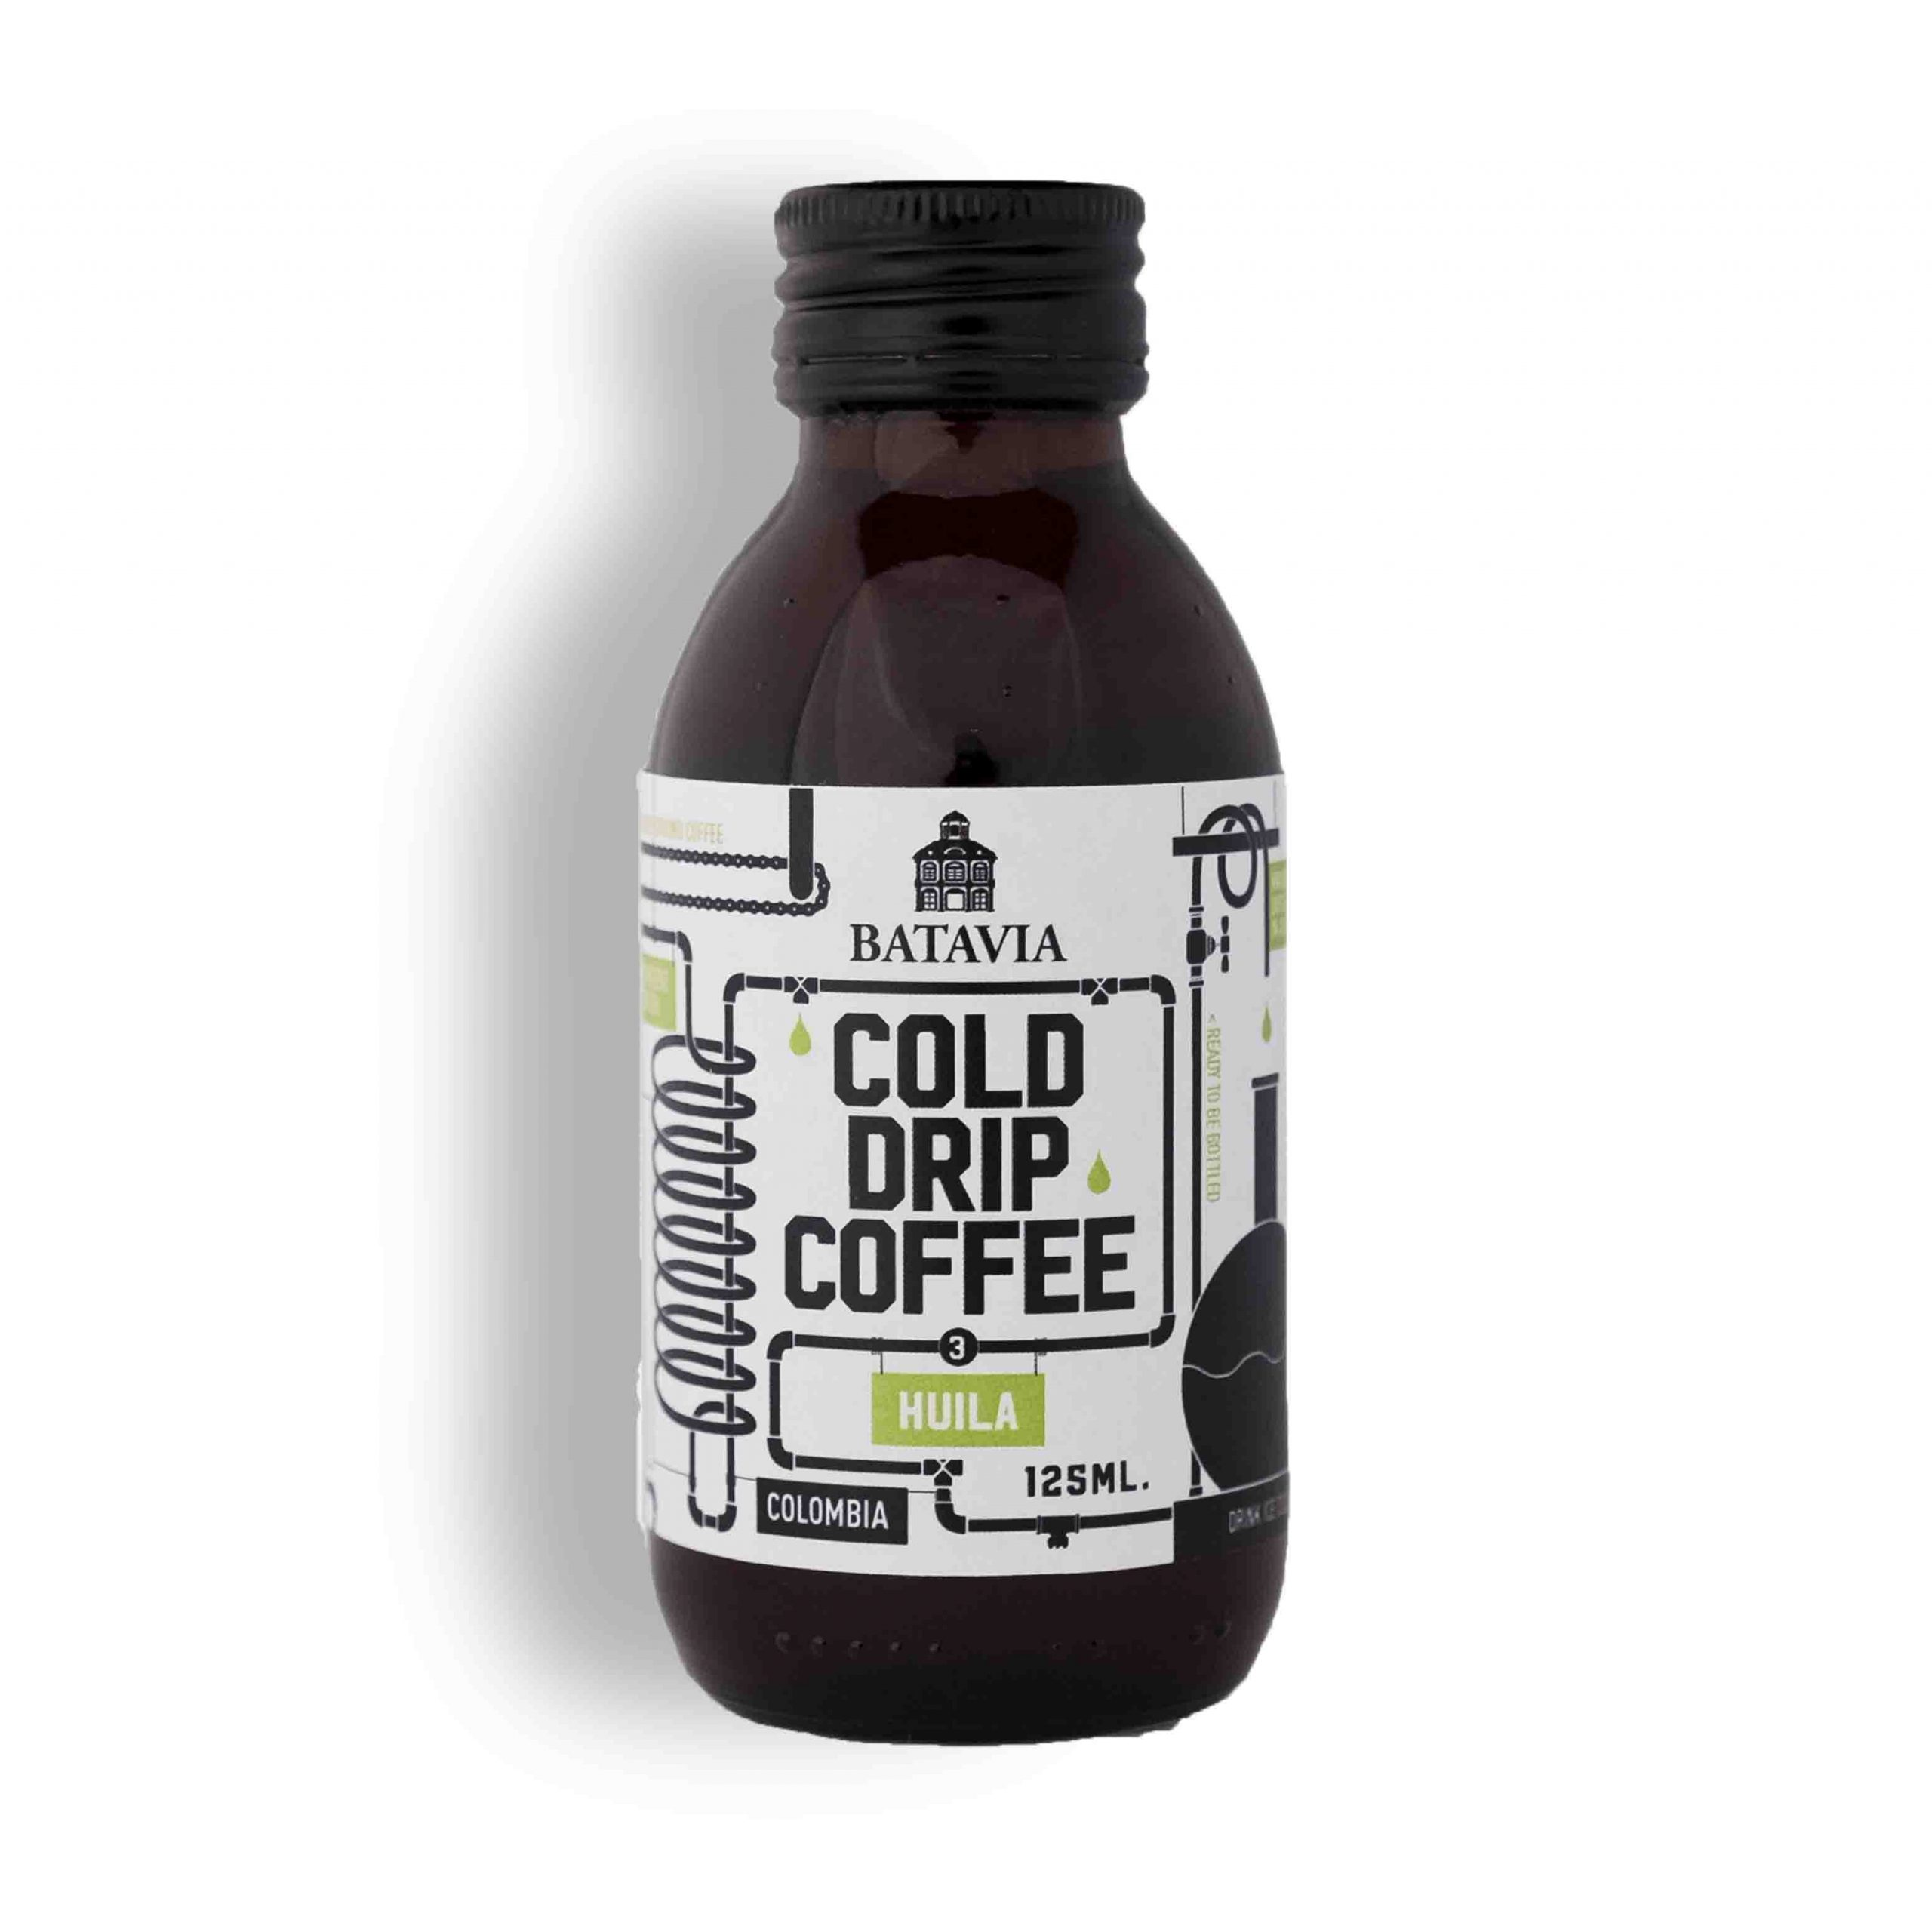 Batavia Cold Drip Coffee Huila 125